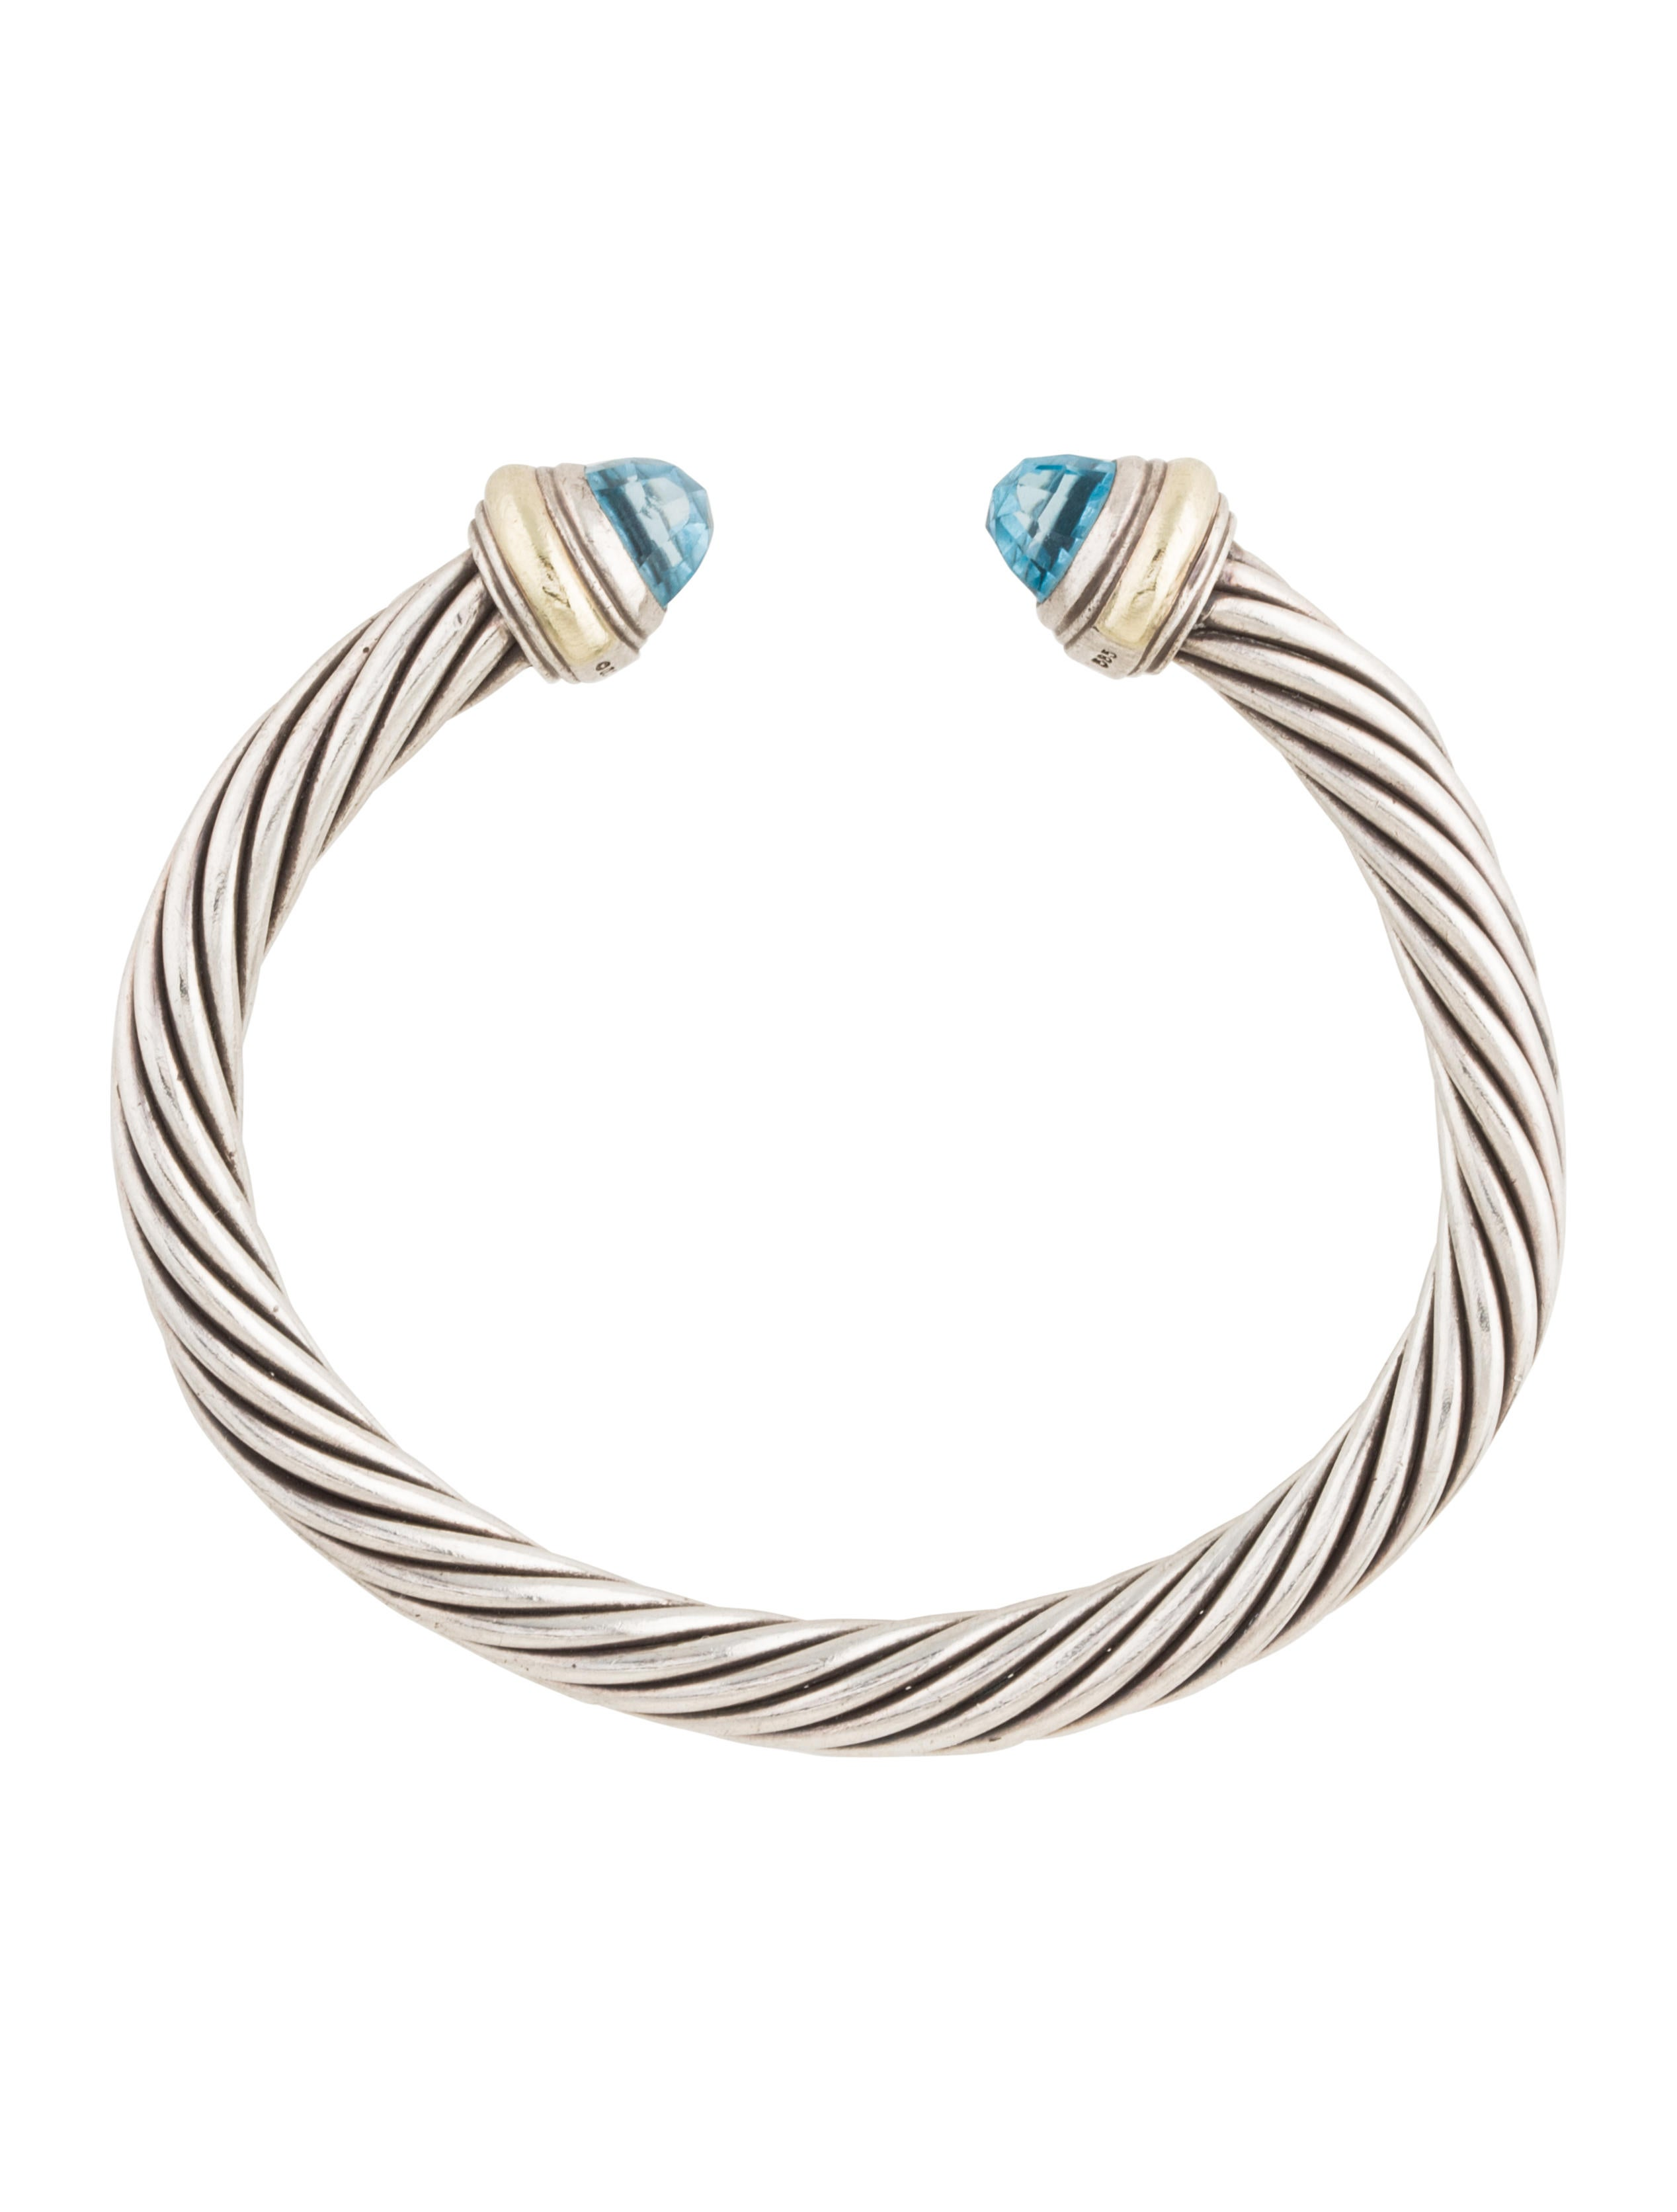 David yurman topaz cable classics bracelet bracelets for David yurman inspired bracelet cable